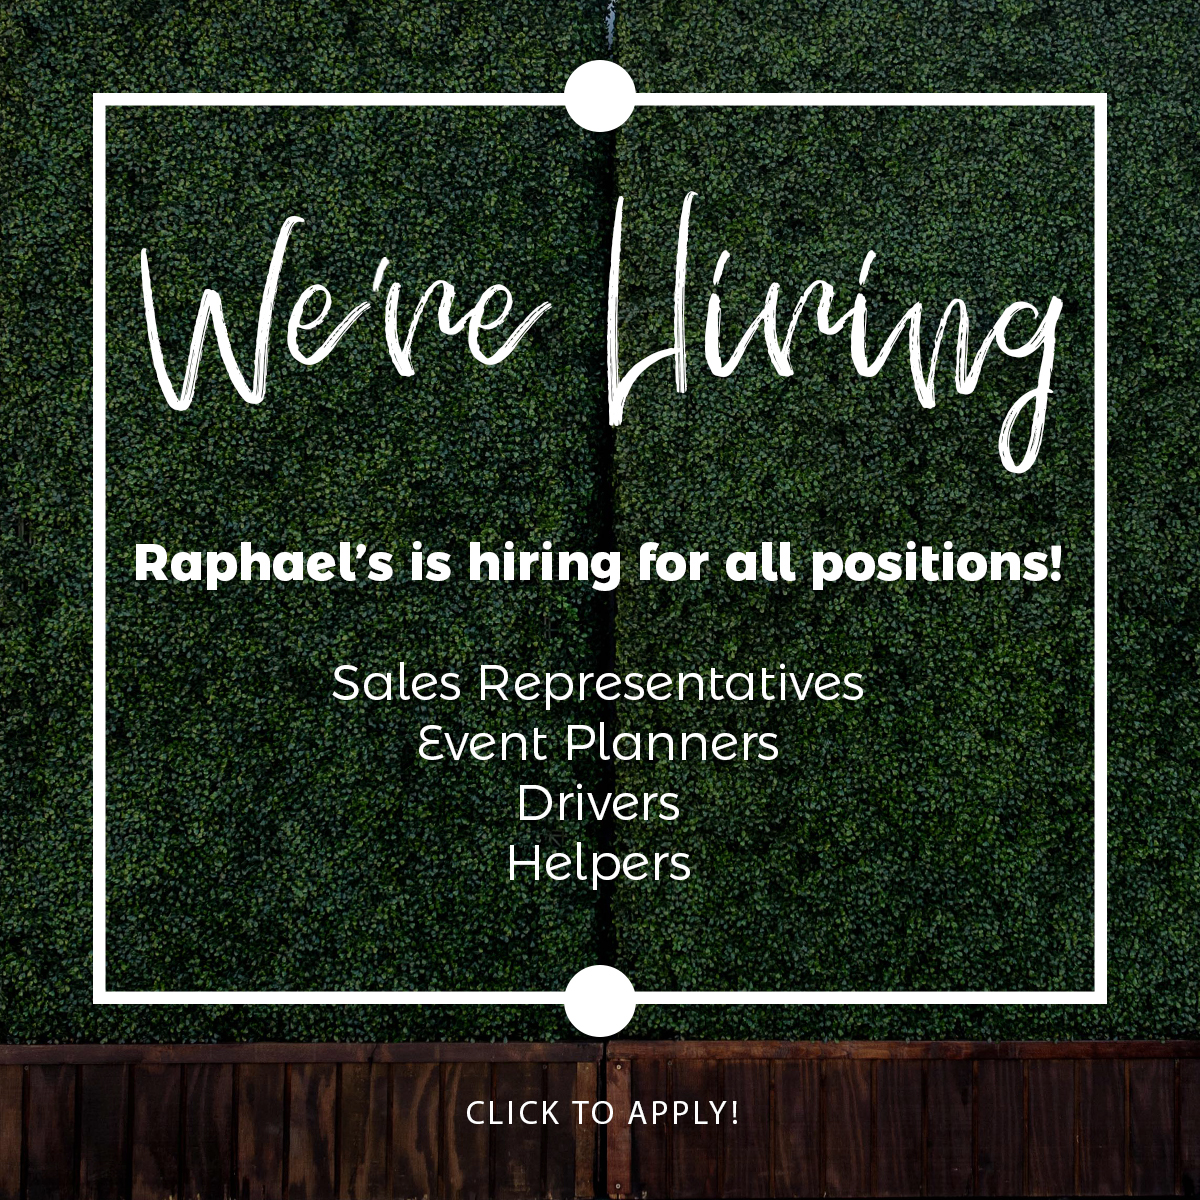 Join The Team - Raphael's Party Rentals